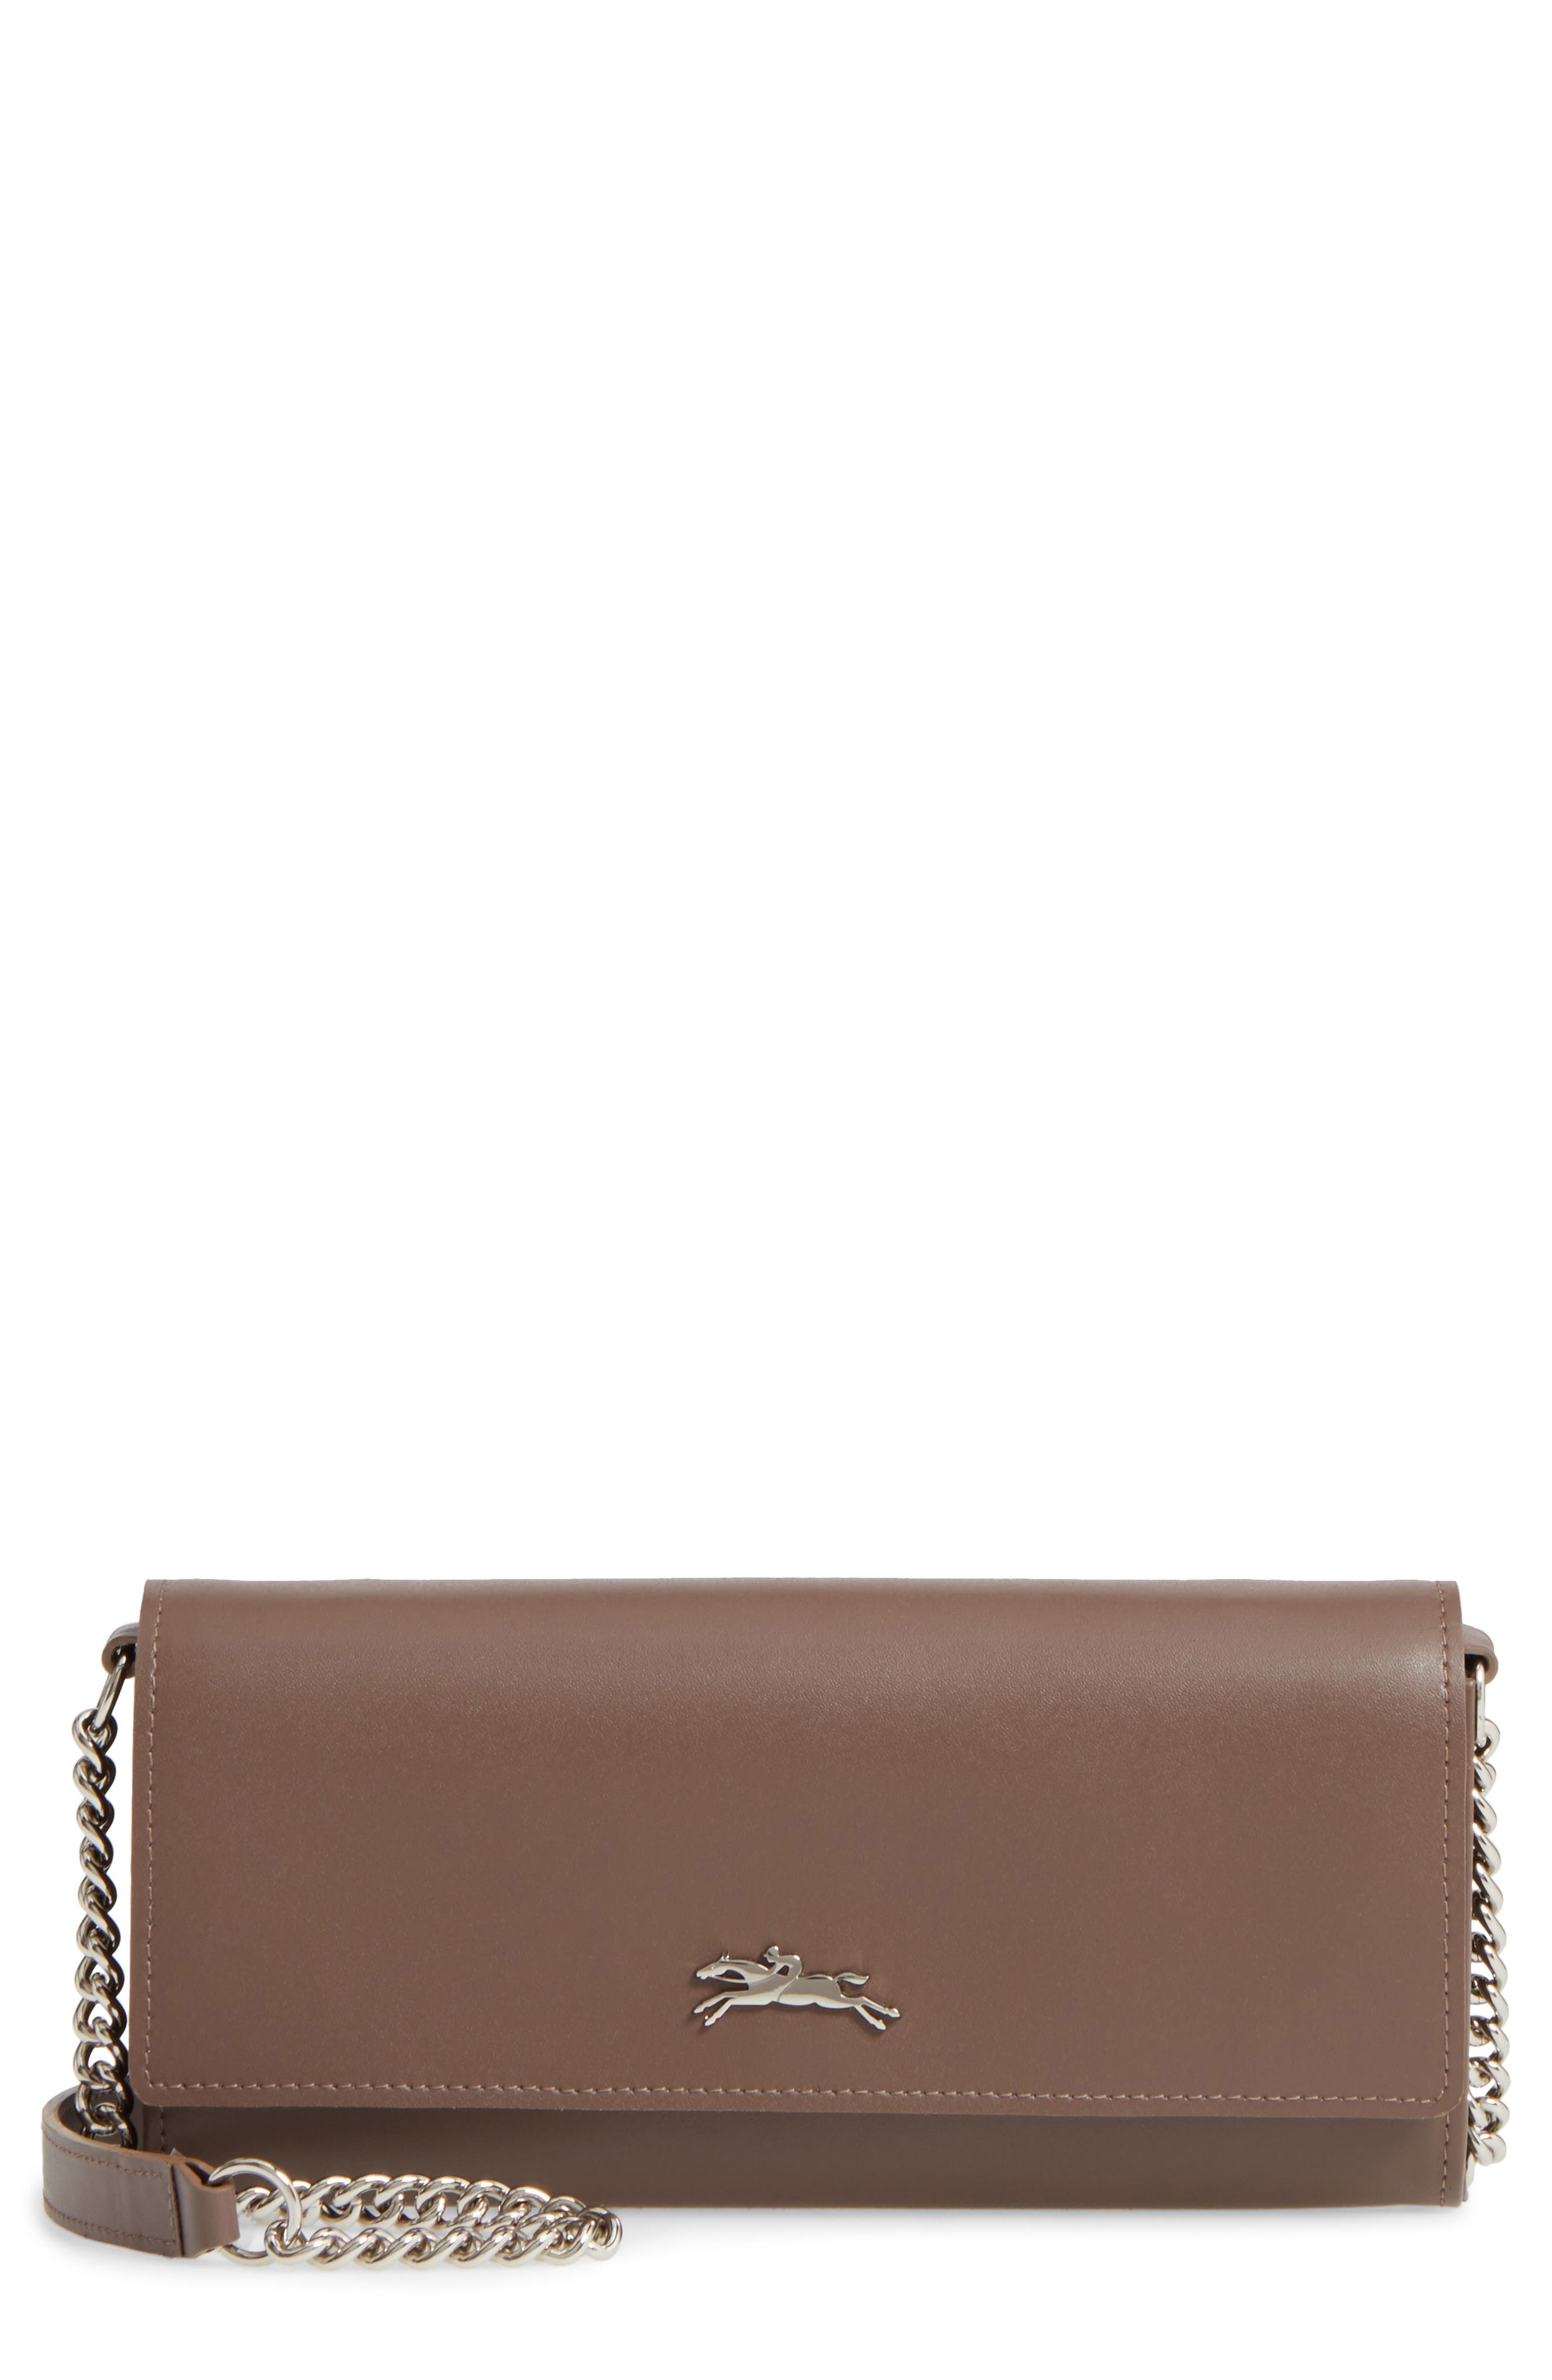 Longchamp 'Honore' Wallet on A Chain